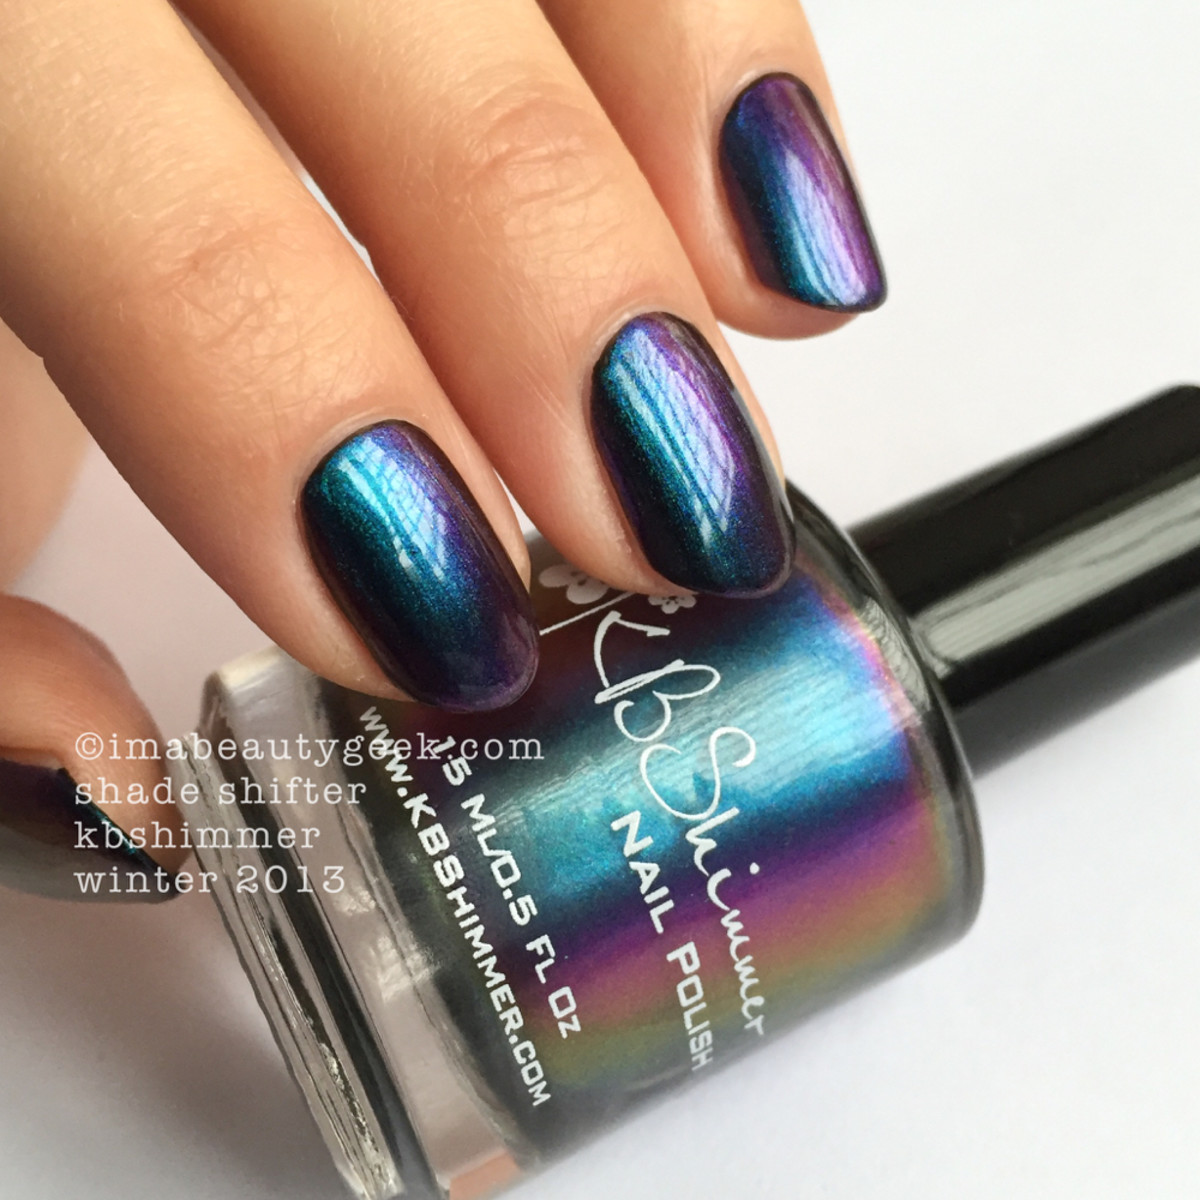 KBShimmer Shade Shifter Winter 2013